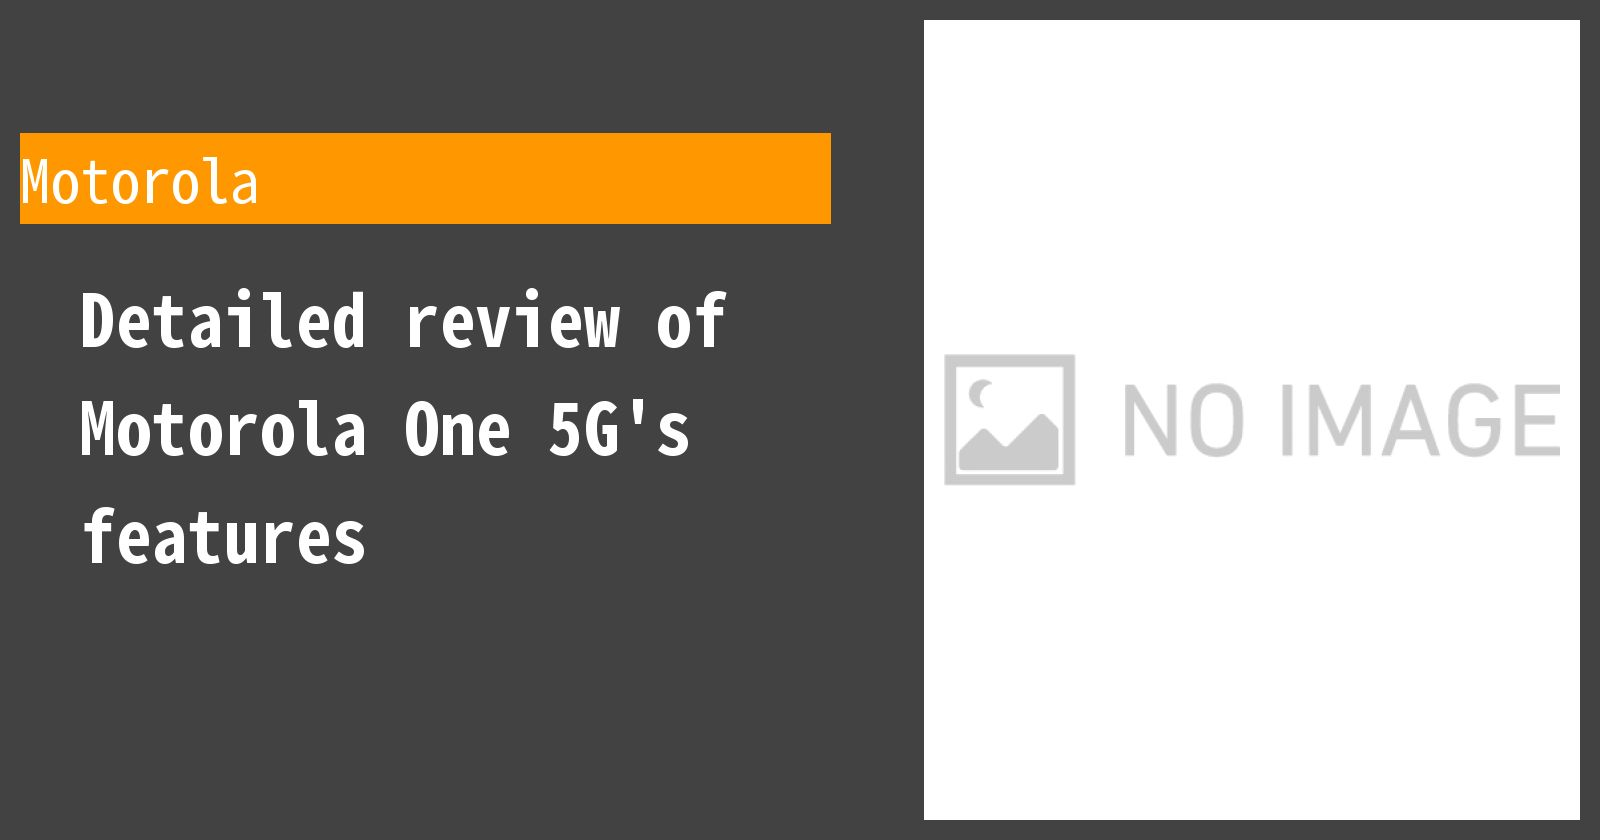 Detailed review of Motorola One 5G's features